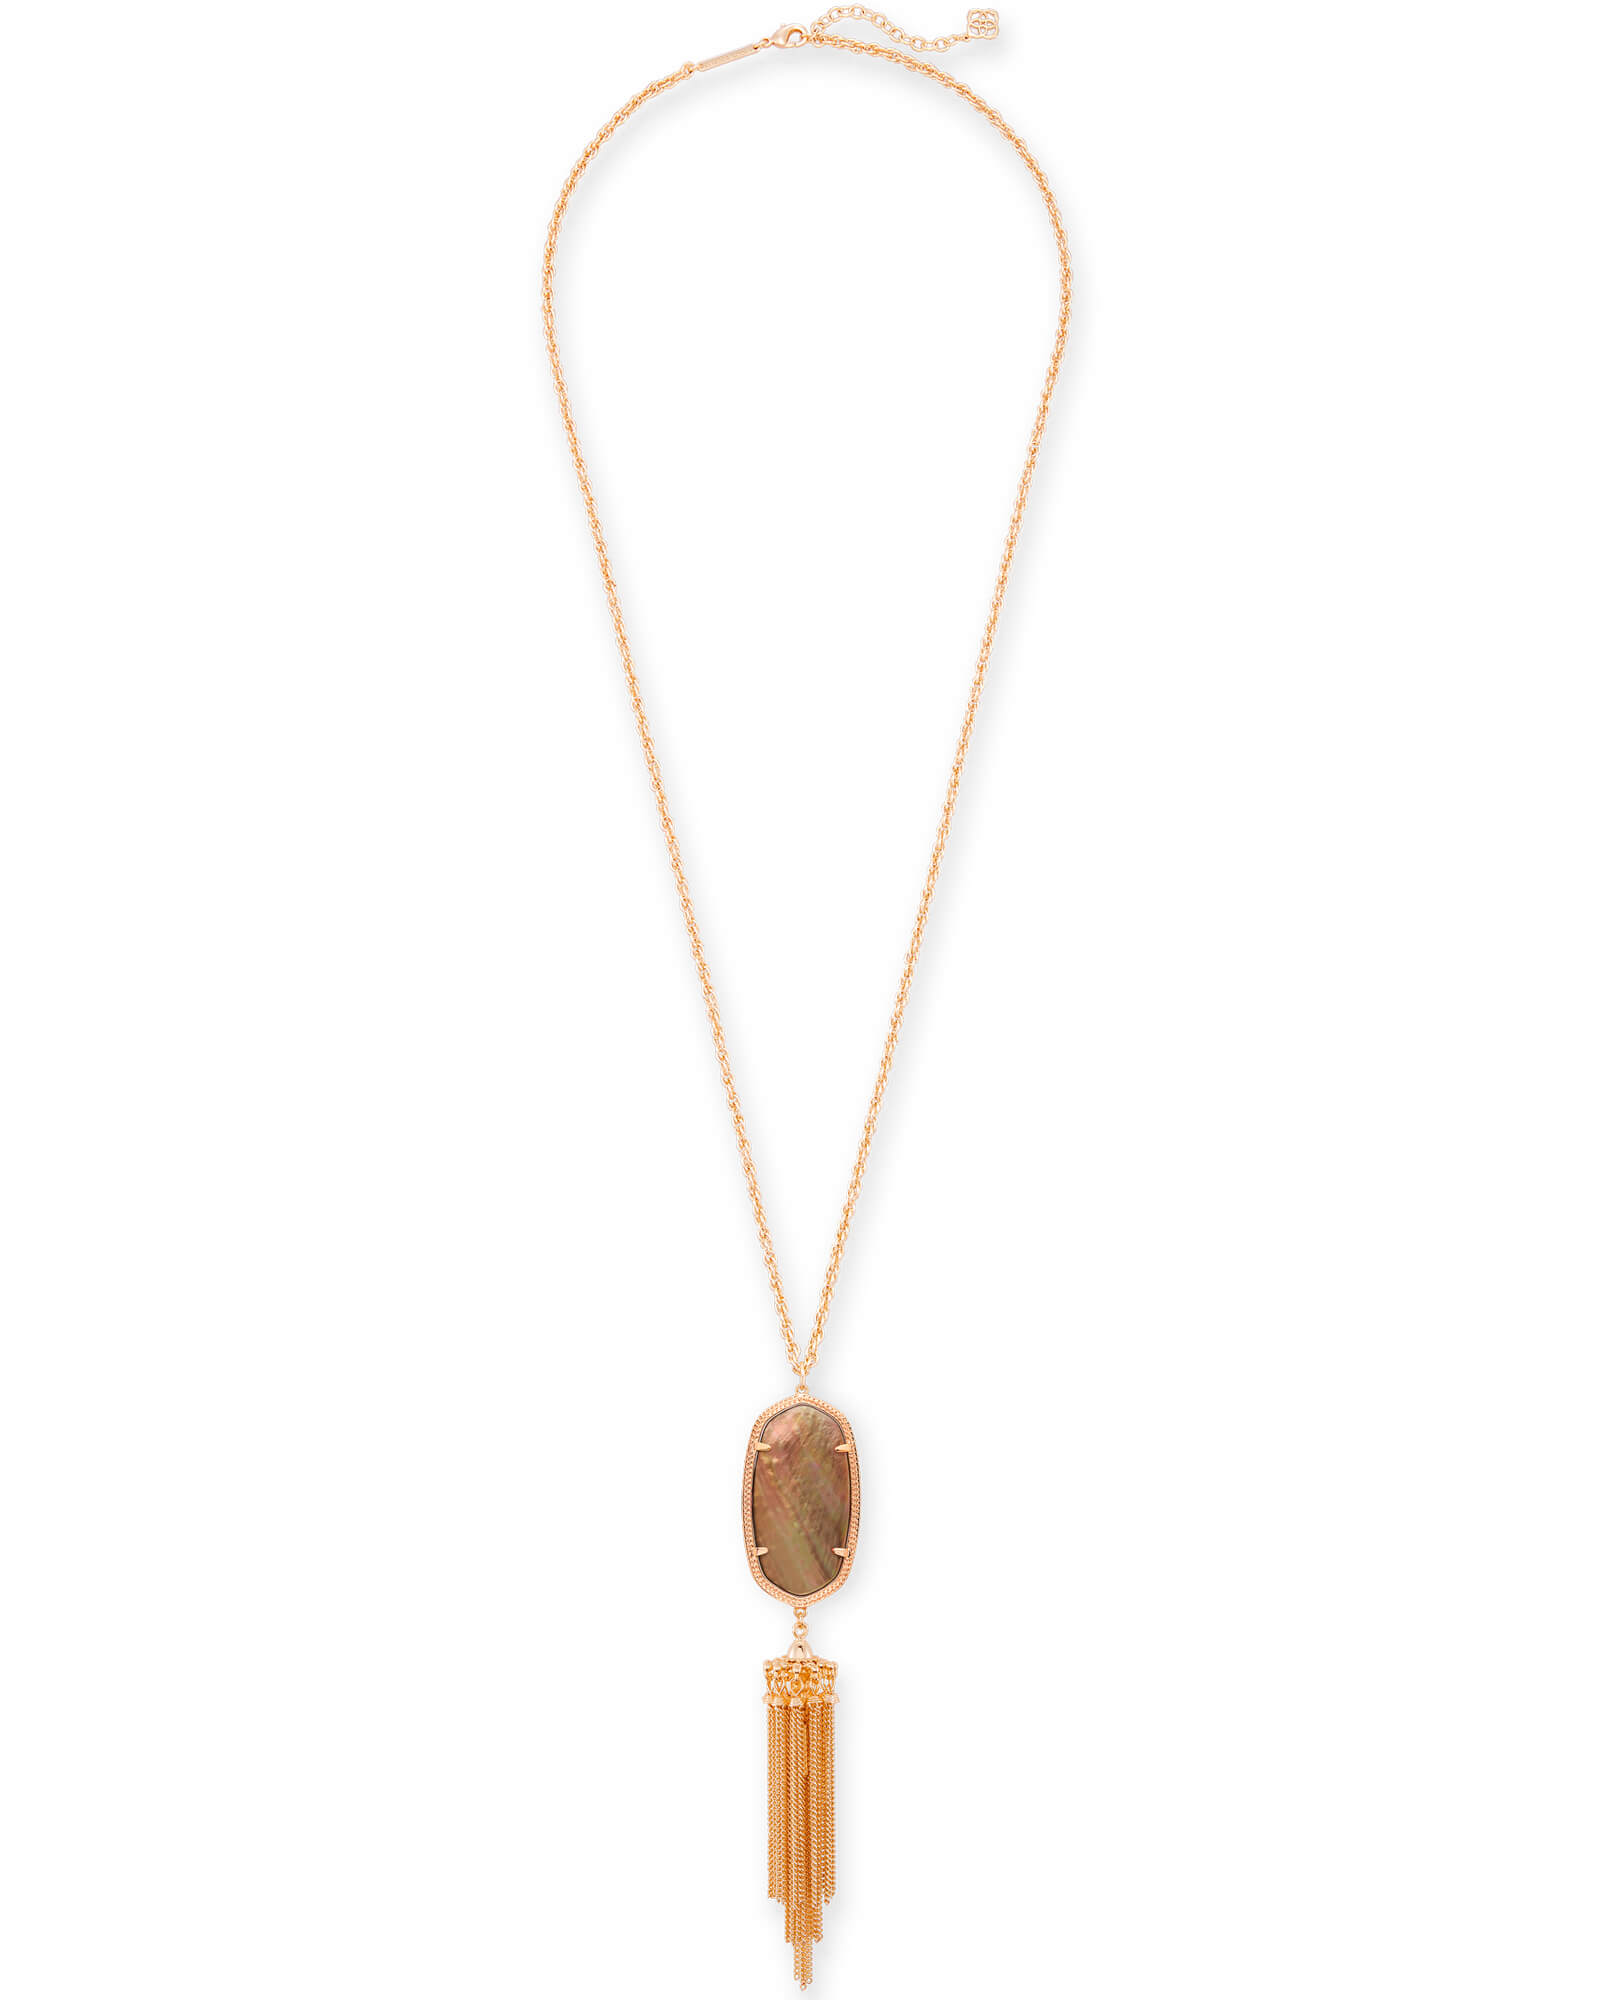 Rayne Long Pendant Necklace in Rose Gold